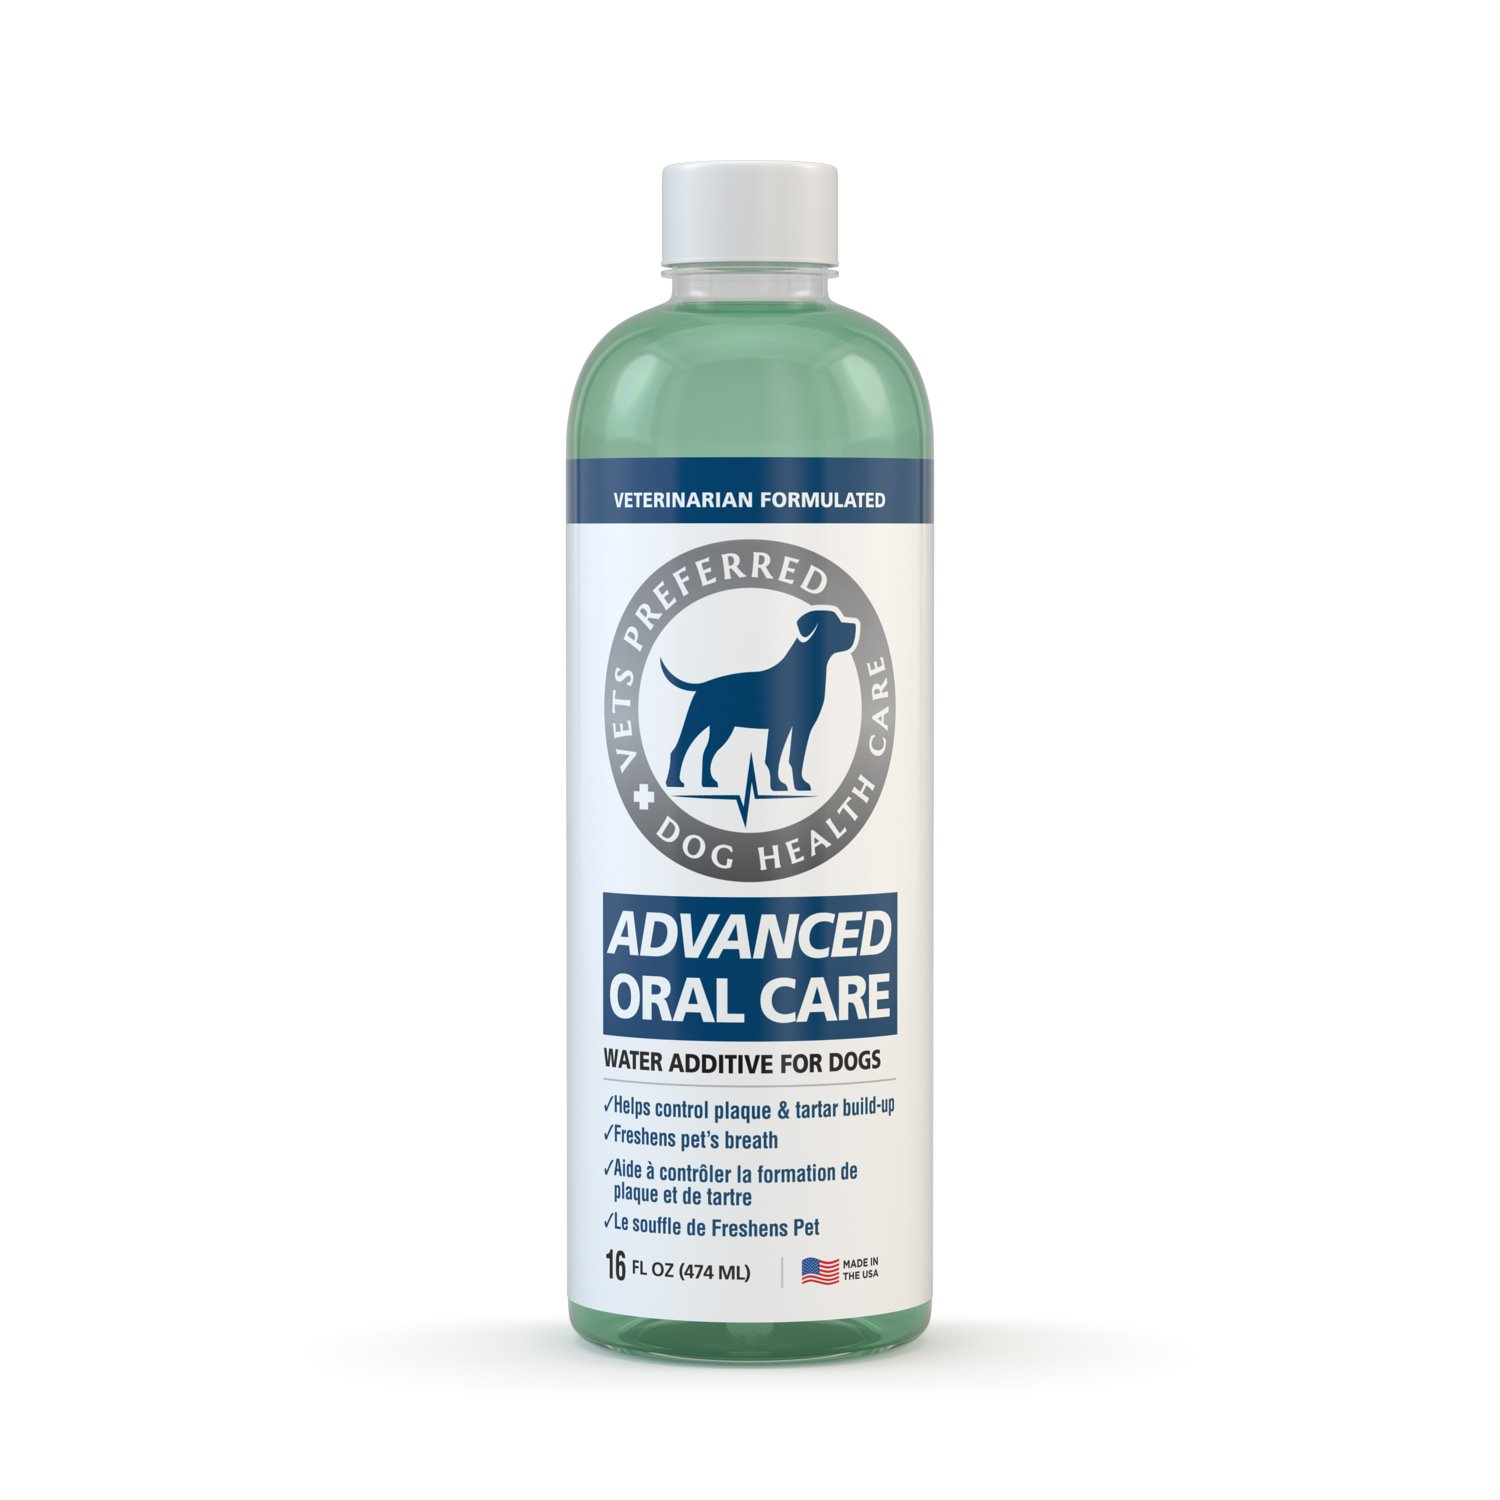 Advanced Oral Care for Dogs (& Cats) - Veterinarian Grade, Premium Solution for Bad Breath Dogs - Controls Plaque, Tartar, Gum Disease With Less Brushing! Simple Water Additive for Dog Oral Care